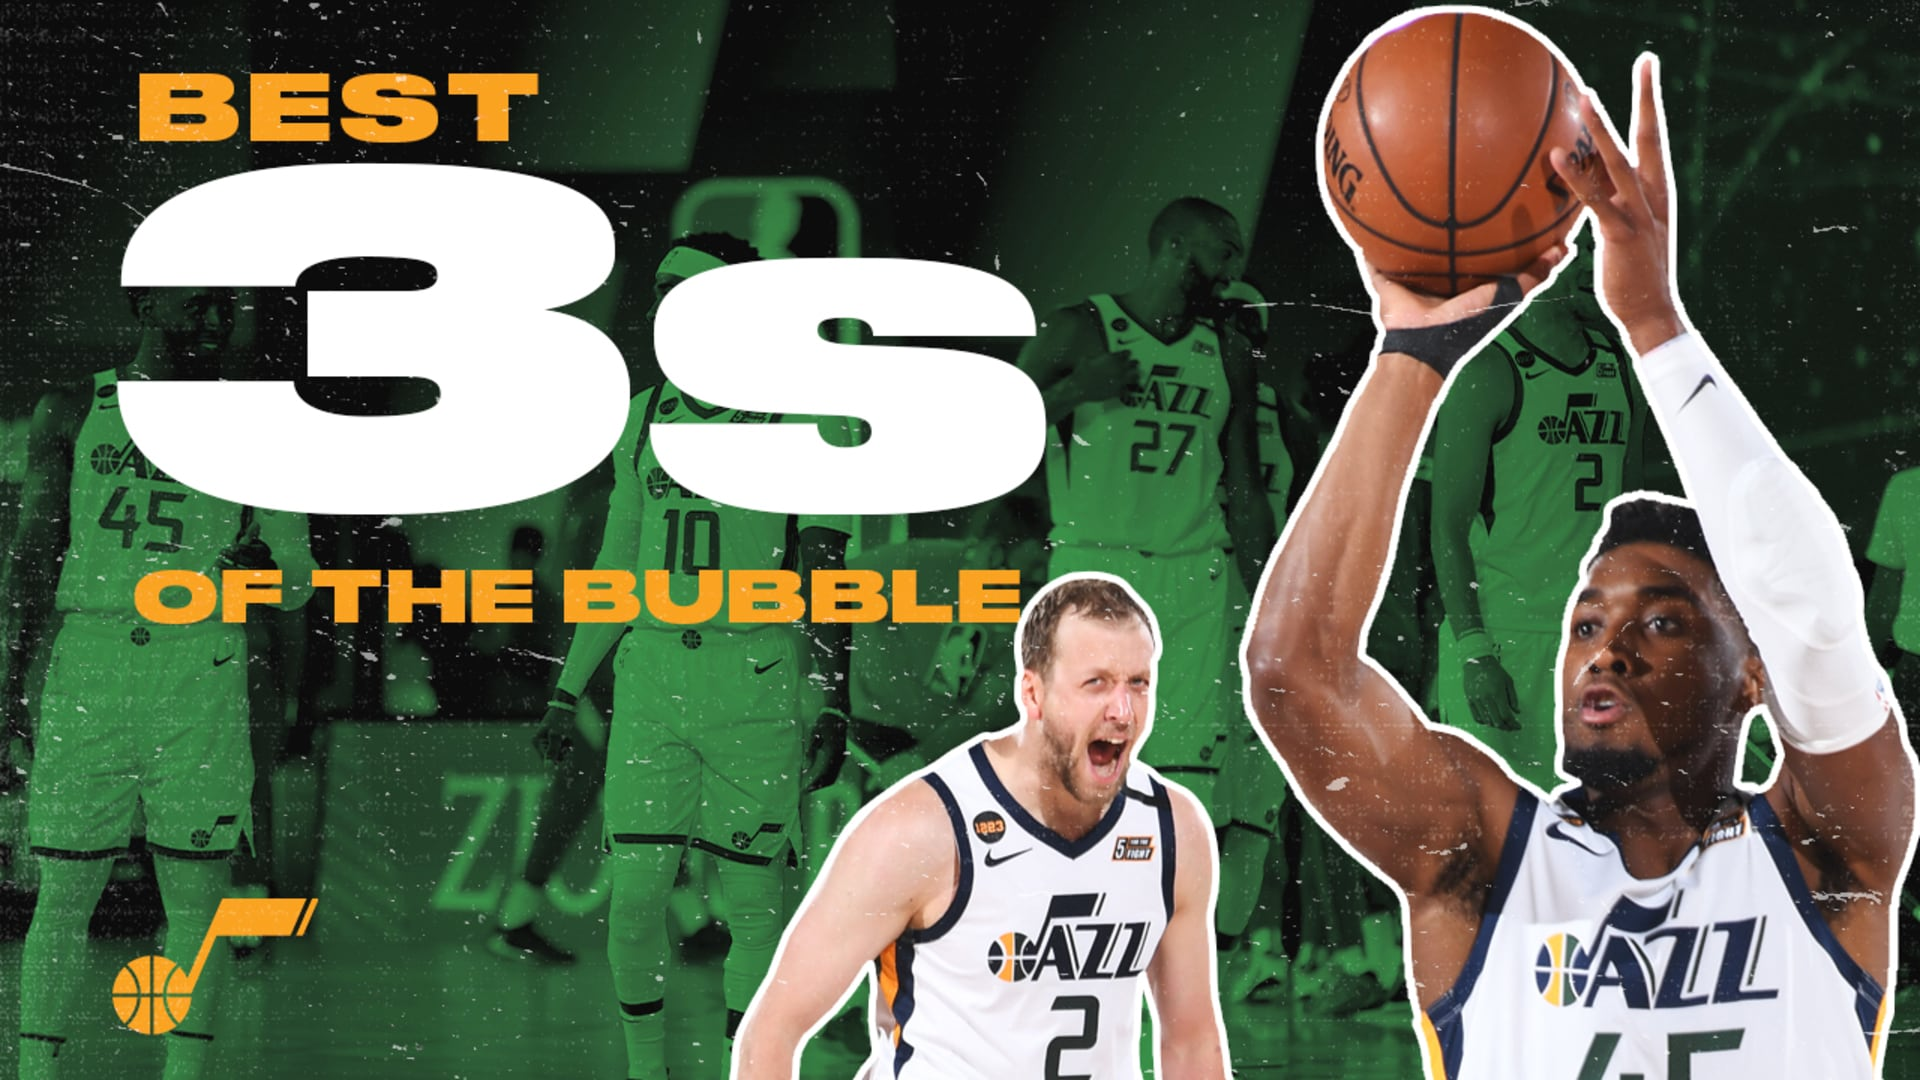 Top 10 3s of the Bubble - #ThreesOfTheWeek